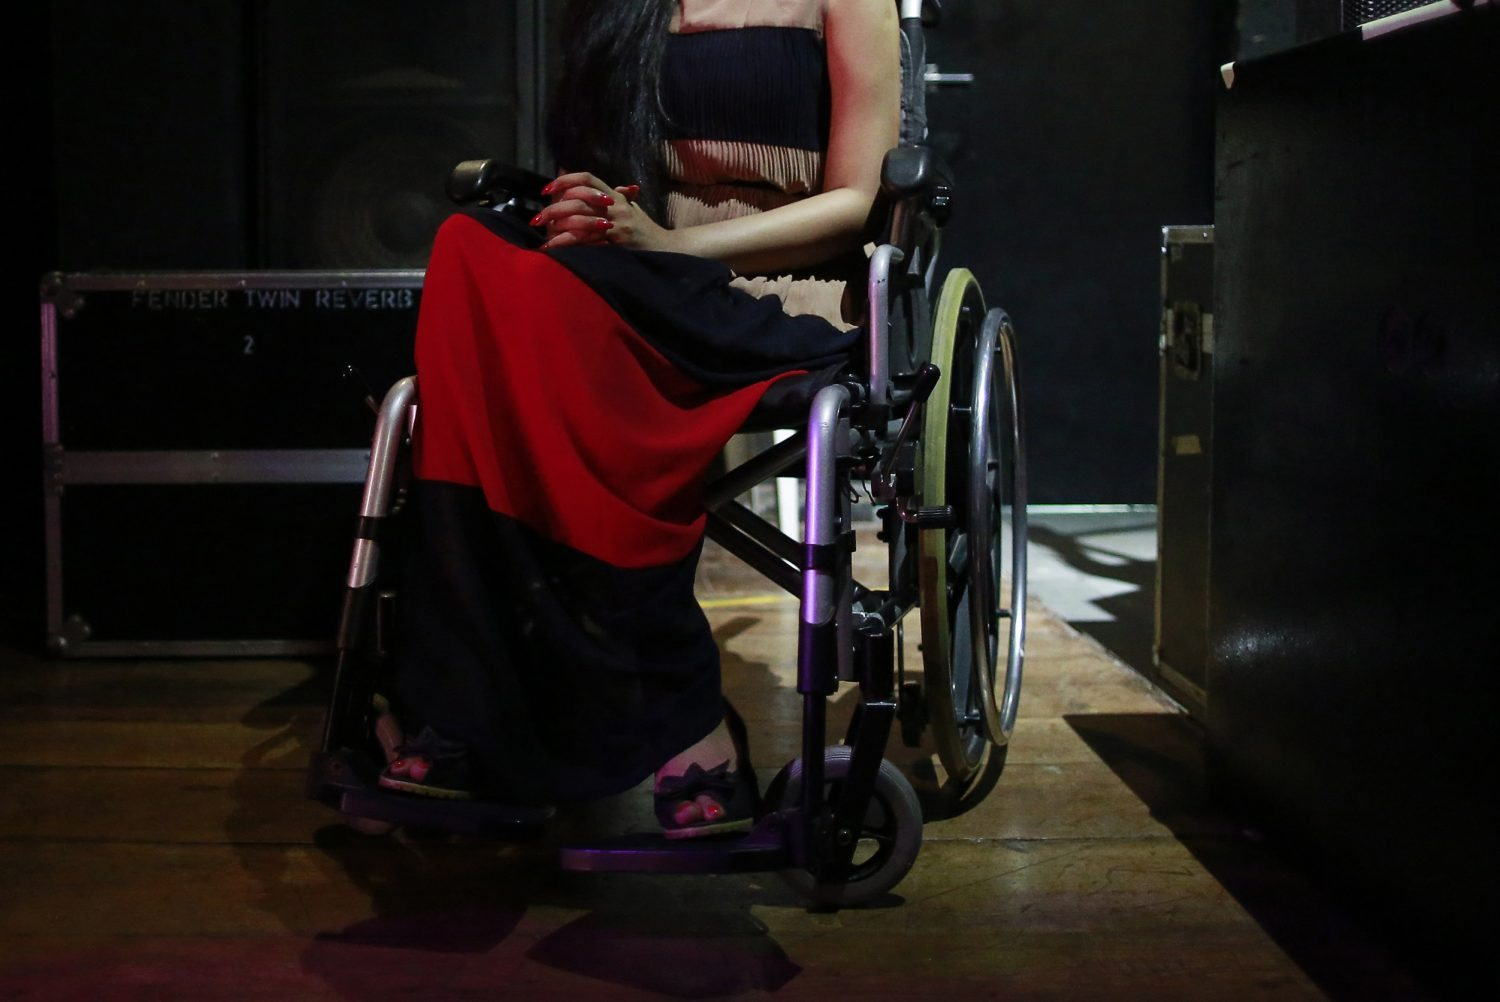 A competitor watches a performance from backstage during the Miss Wheelchair India beauty pageant in Mumbai November 26, 2014. Seven women from across India participated in the country's second wheelchair beauty pageant, which aims to open doors for the wheelchair-bound in modelling, film and television, according to organisers. REUTERS/Danish Siddiqui (INDIA - Tags: SOCIETY) - RTR4FQ6S